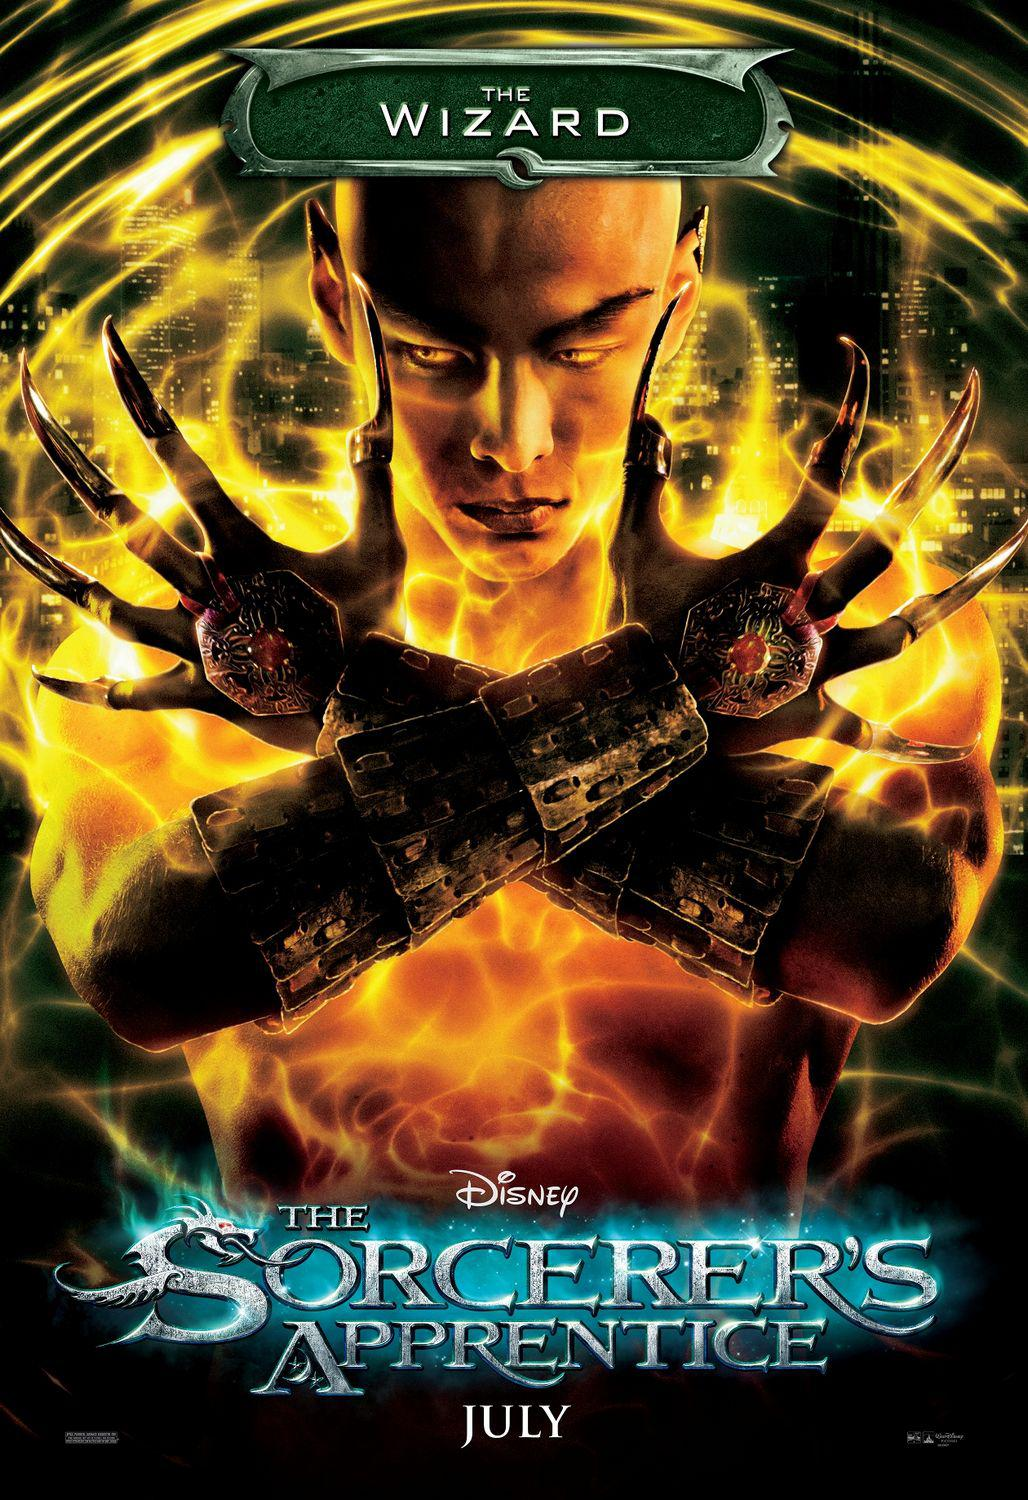 Apprendista Stregone - The Sorcerers Apprentice - Ethan Peck the Wizard